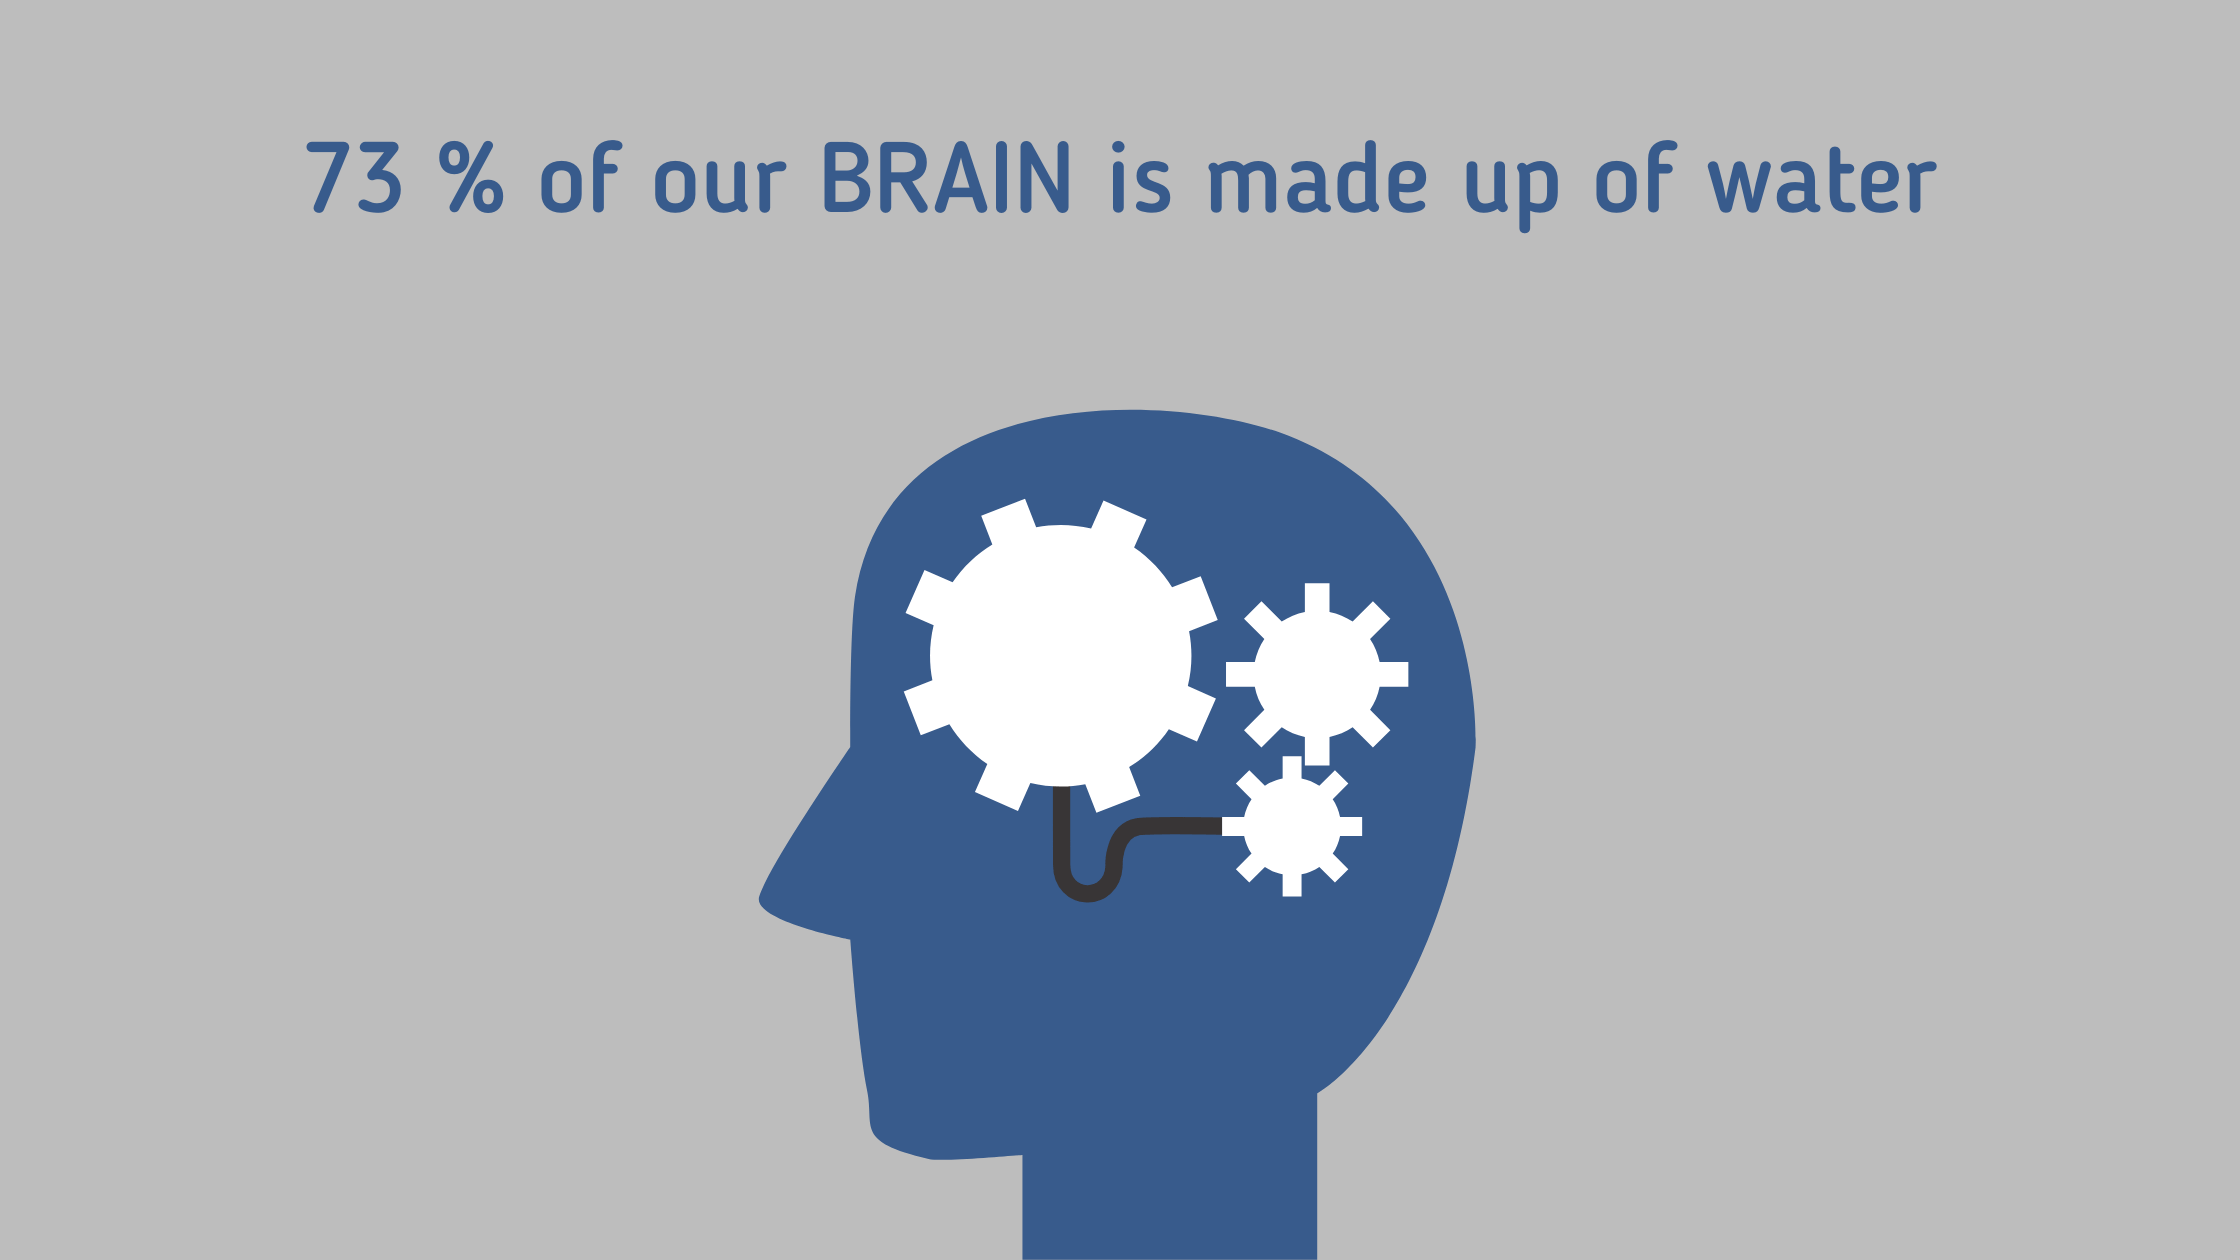 73% of our brain is made up of water